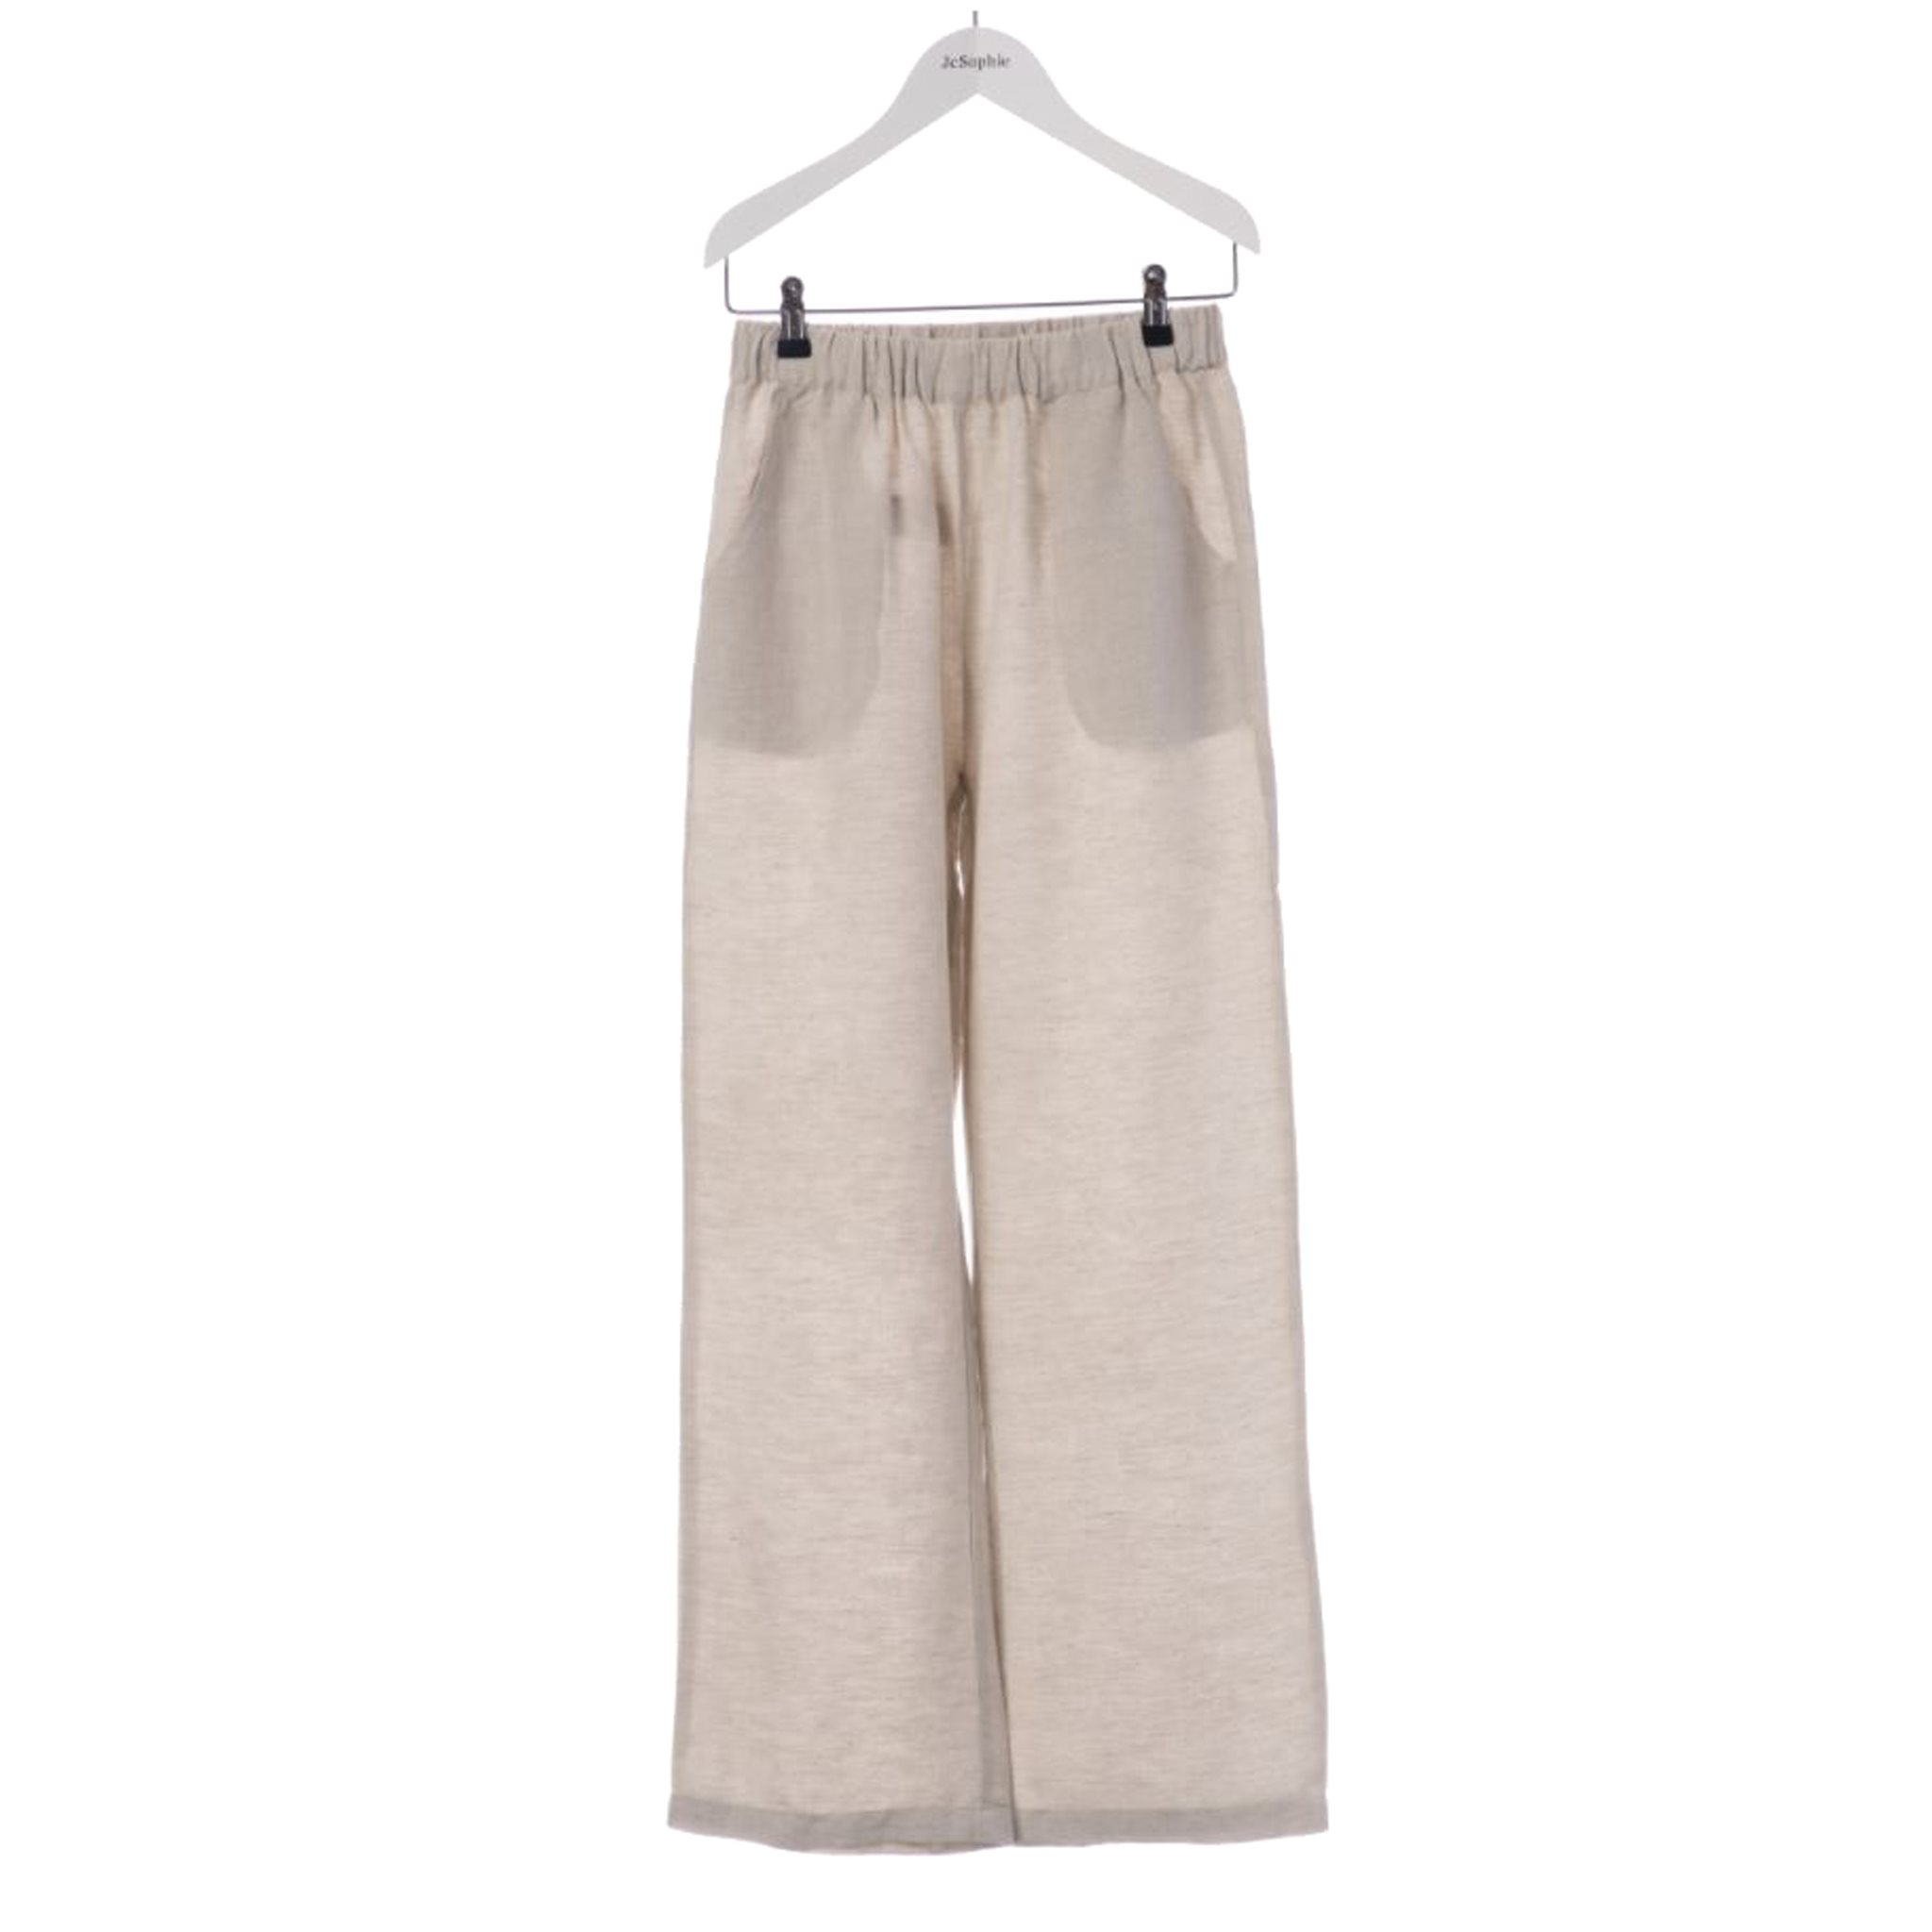 Garance trousers Jc SOPHIE